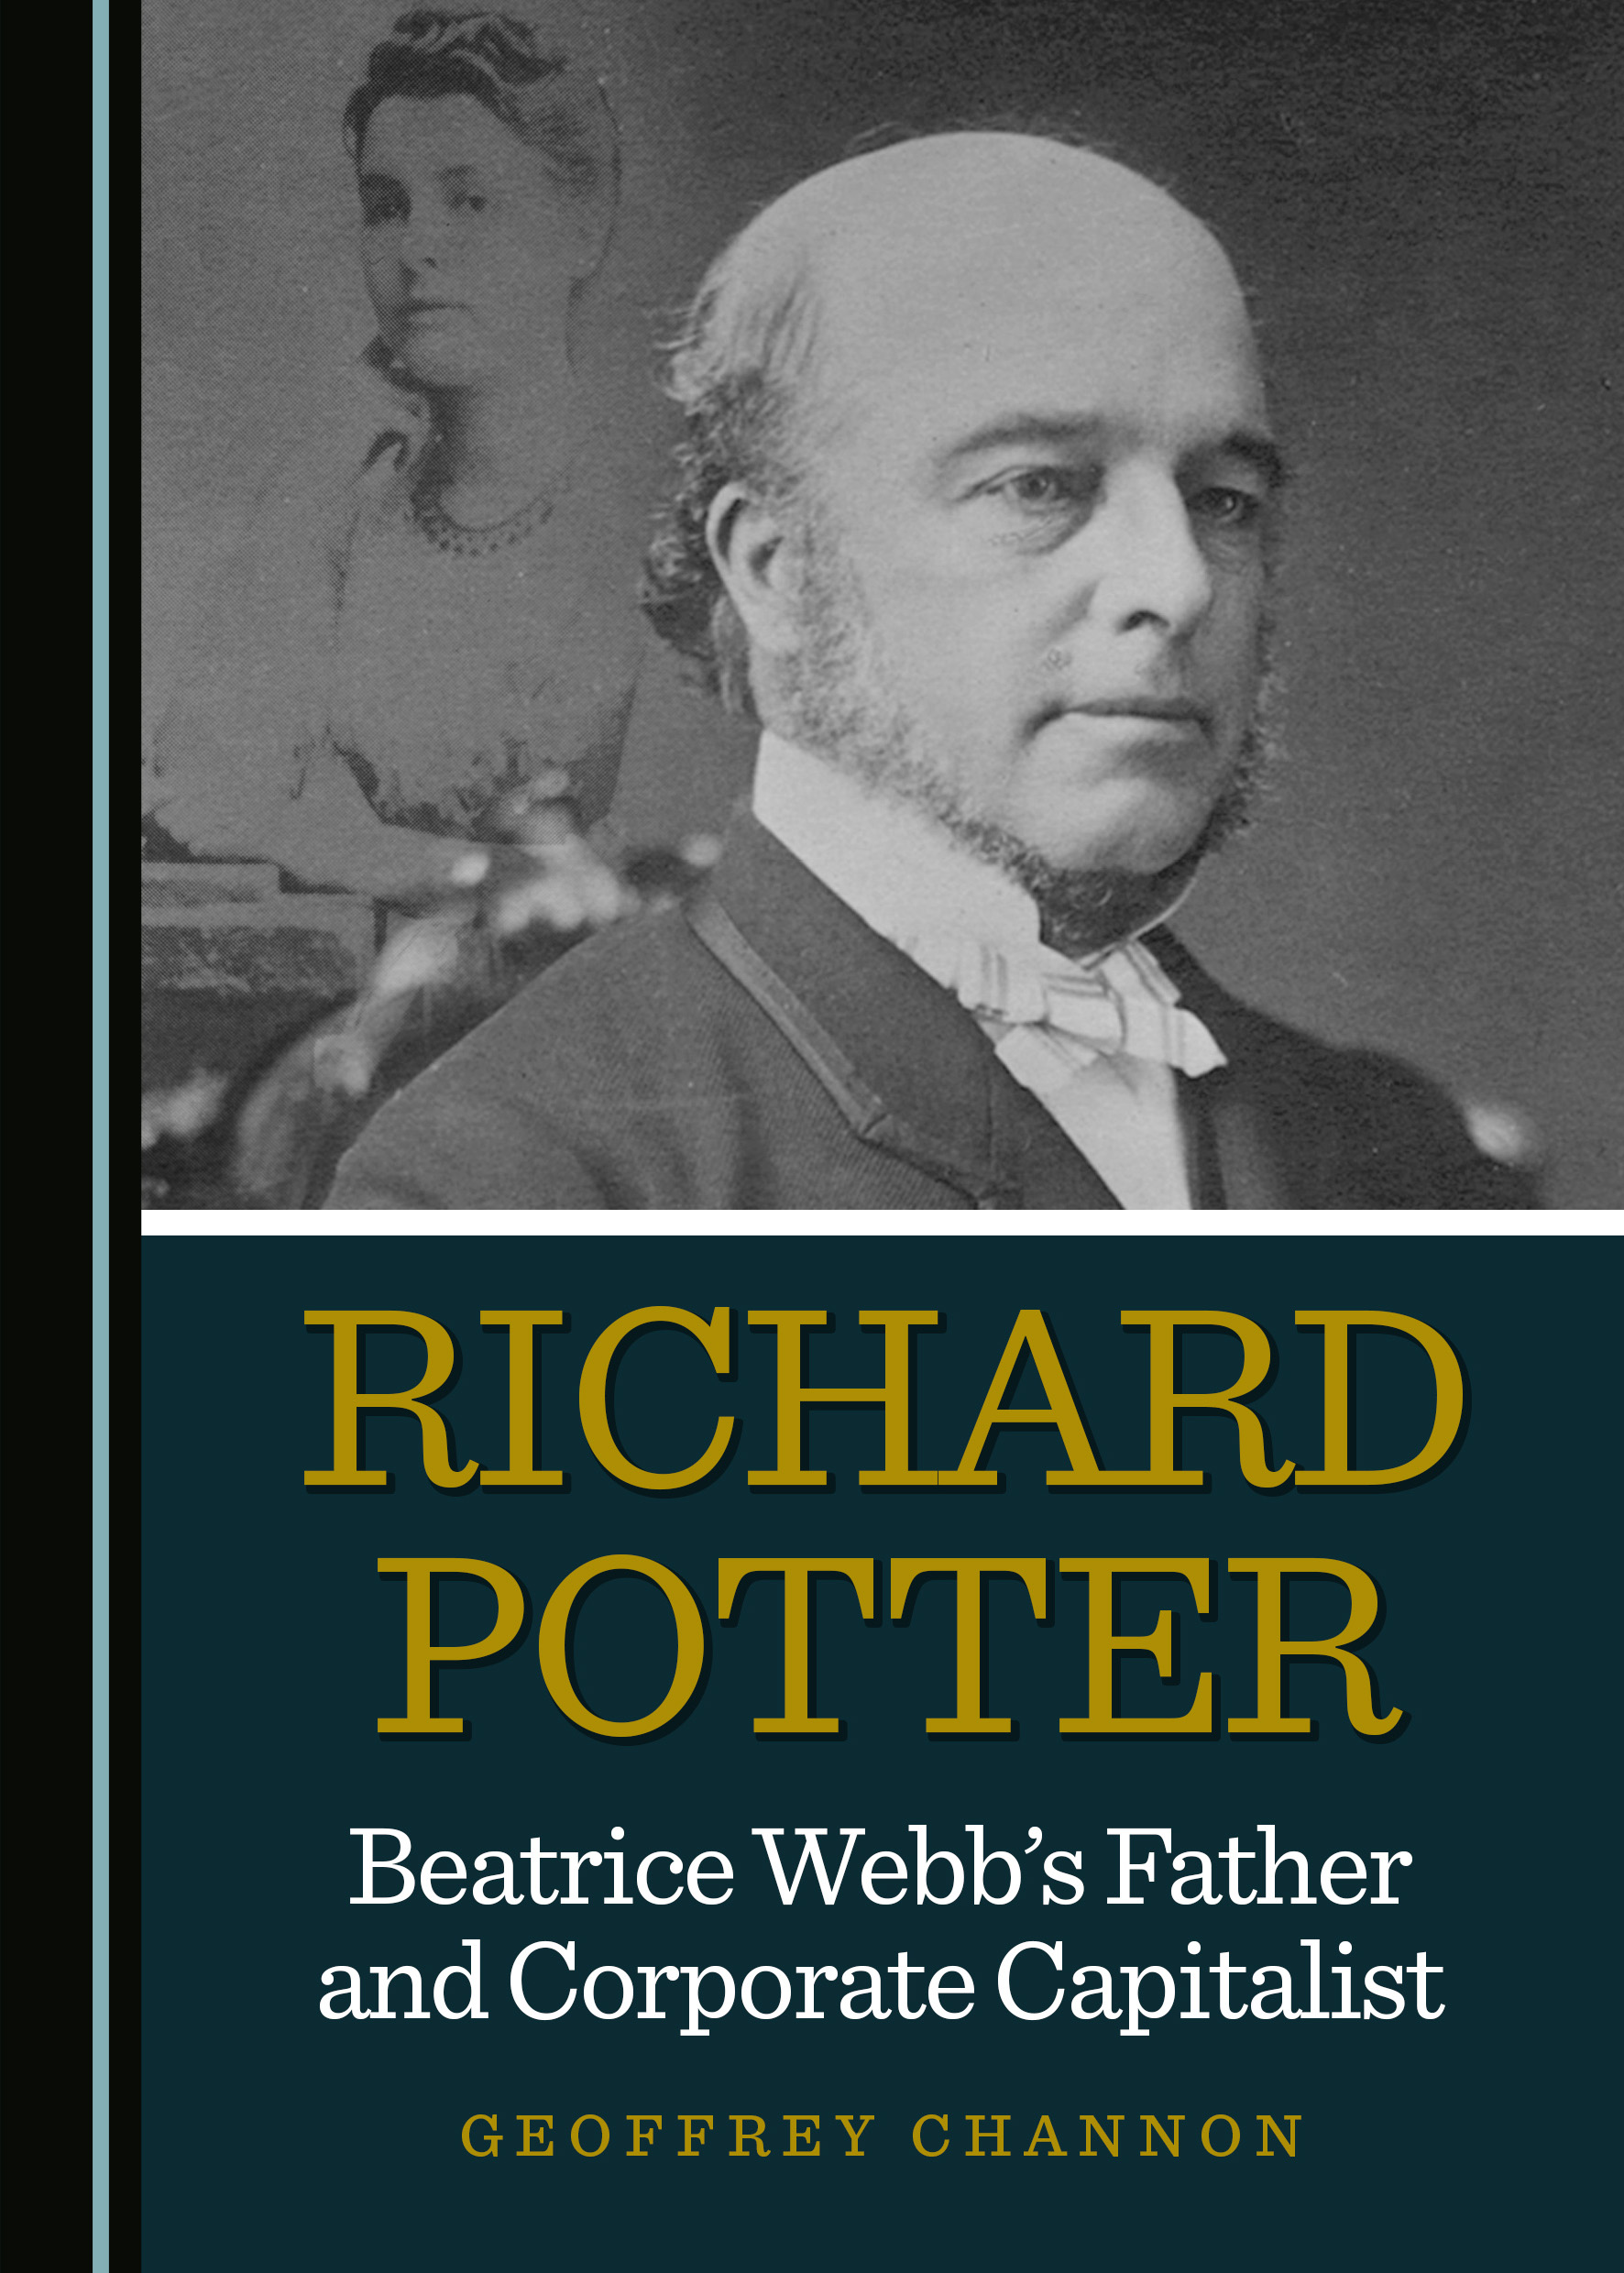 Richard Potter, Beatrice Webb's Father and Corporate Capitalist